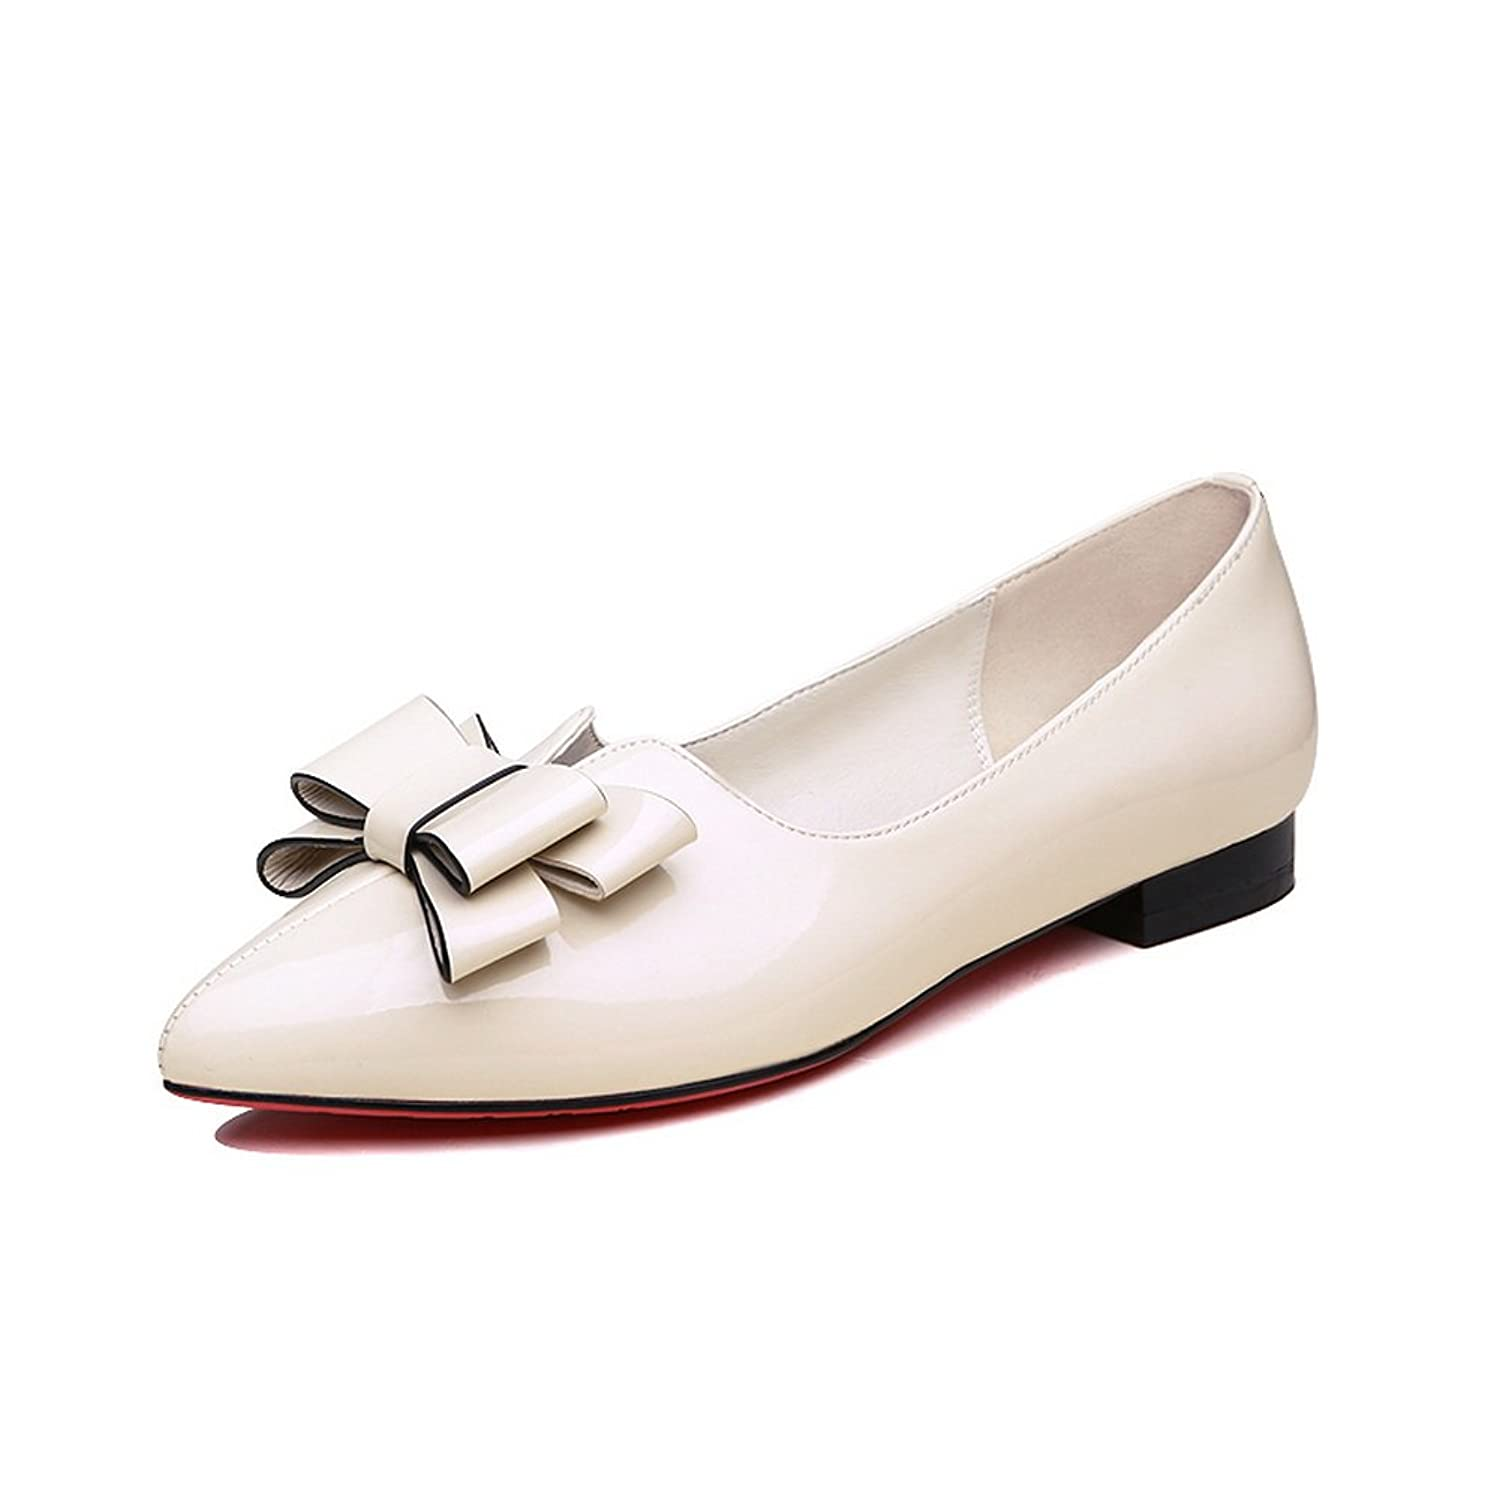 AdeeSu Womens Patent Leather Comfort Casual Patent-Leather Mary Jane Flats  SDC04592